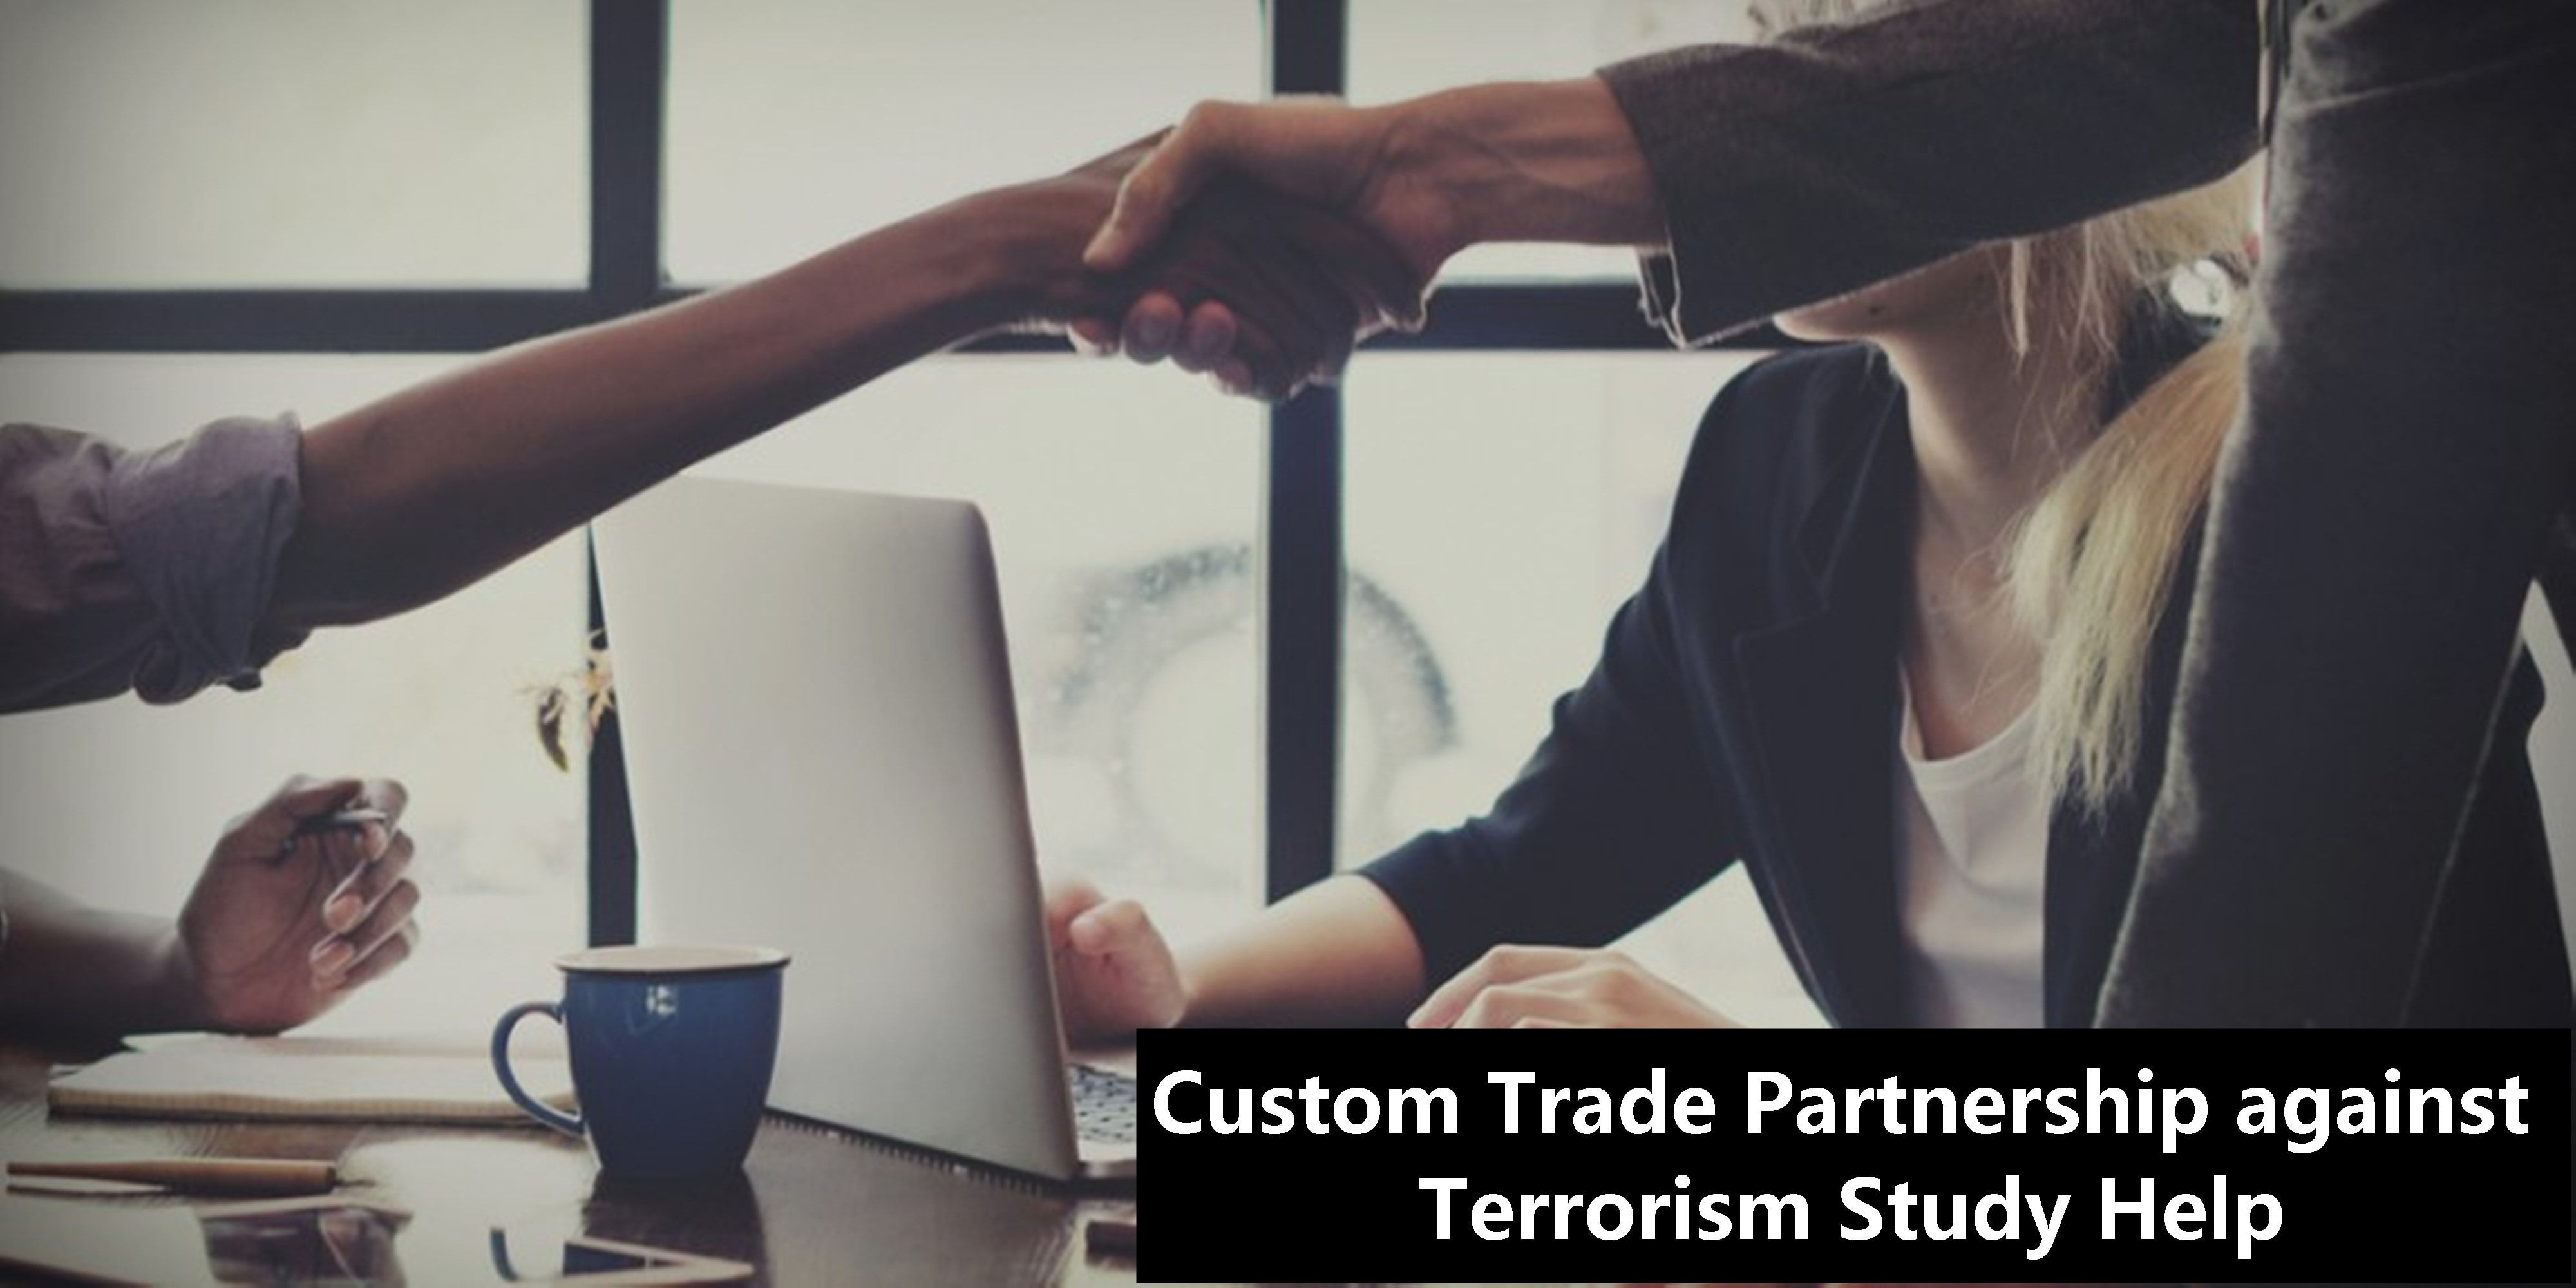 Custom Trade Partnership against Terrorism Study Help